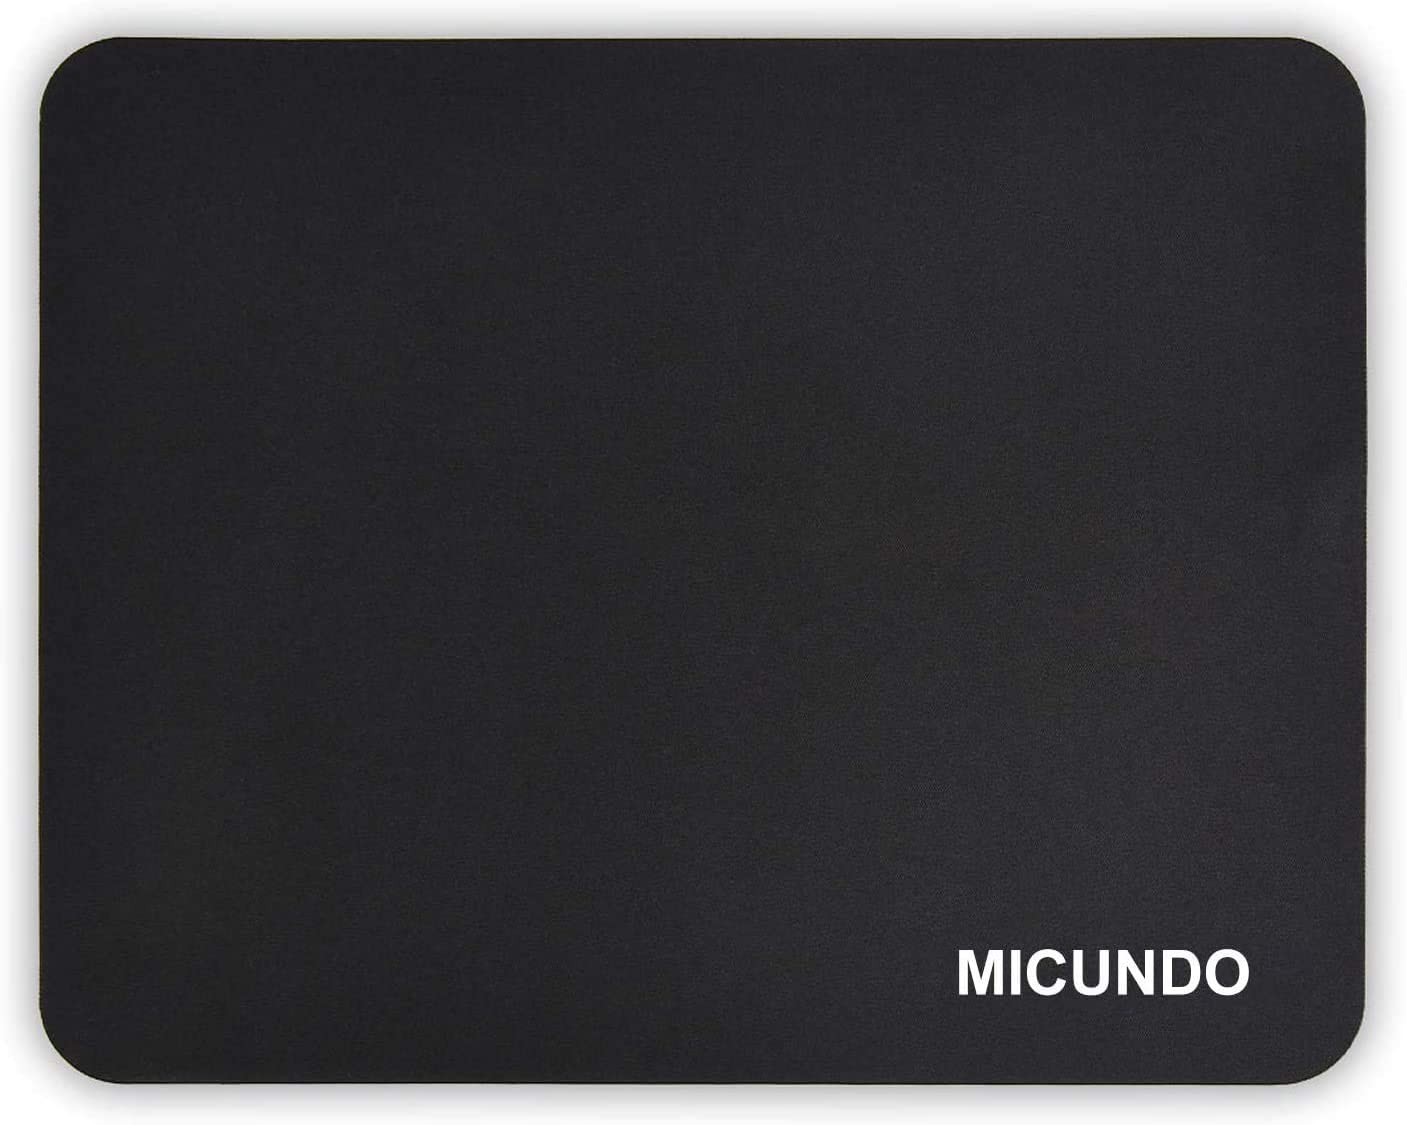 MICUNDO G440 Hard Gaming Mouse Pad for High DPI Gaming49